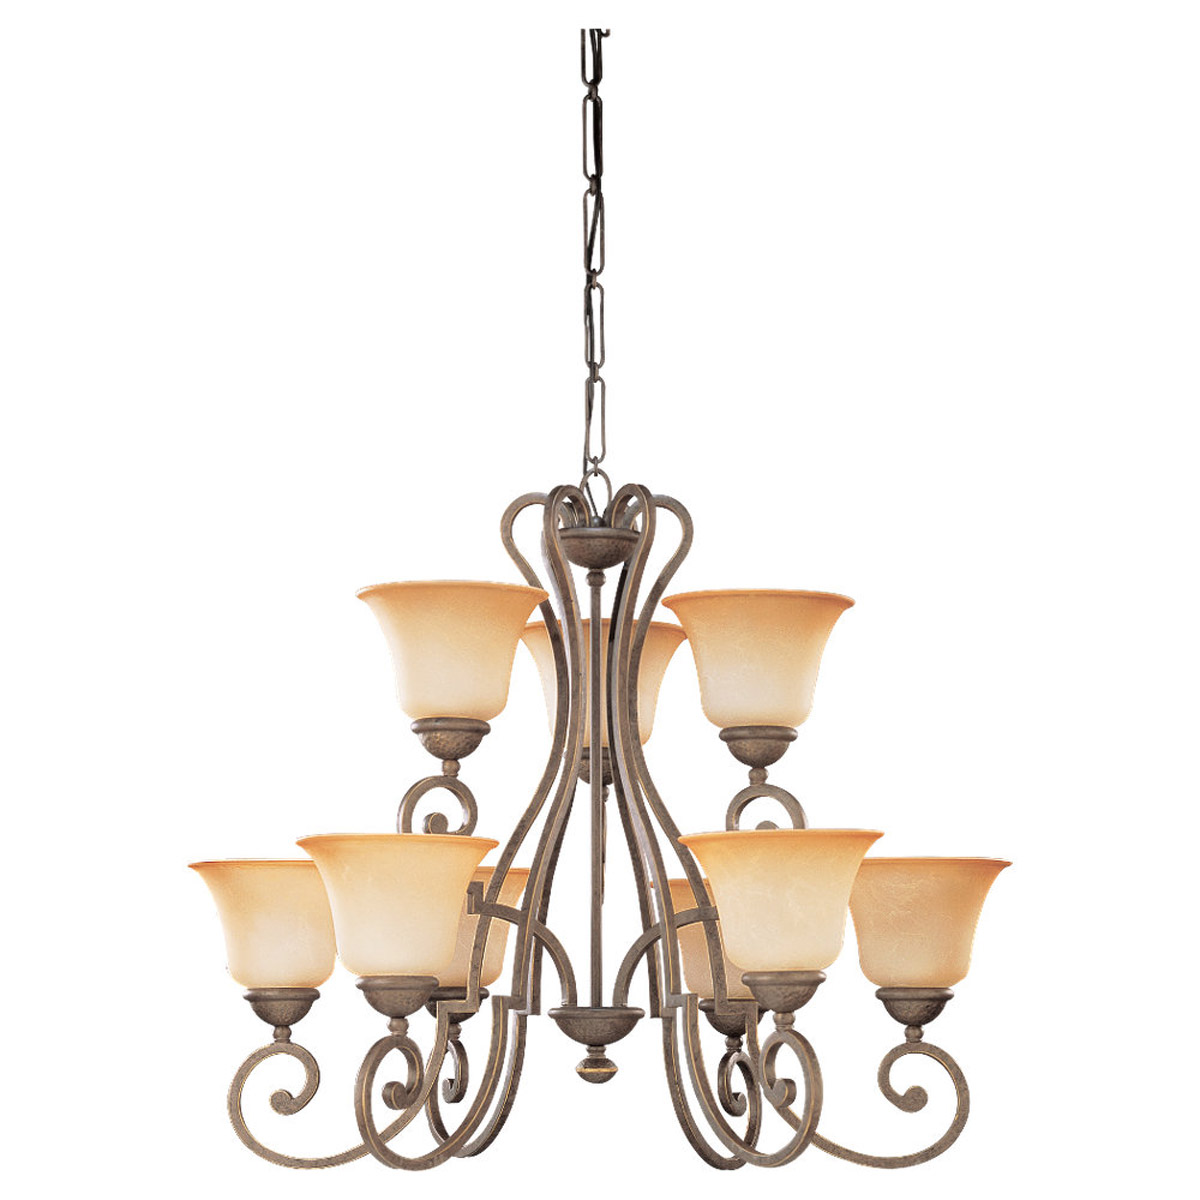 Sea Gull Lighting Brandywine 9 Light Chandelier in Antique Bronze 39033BLE-71